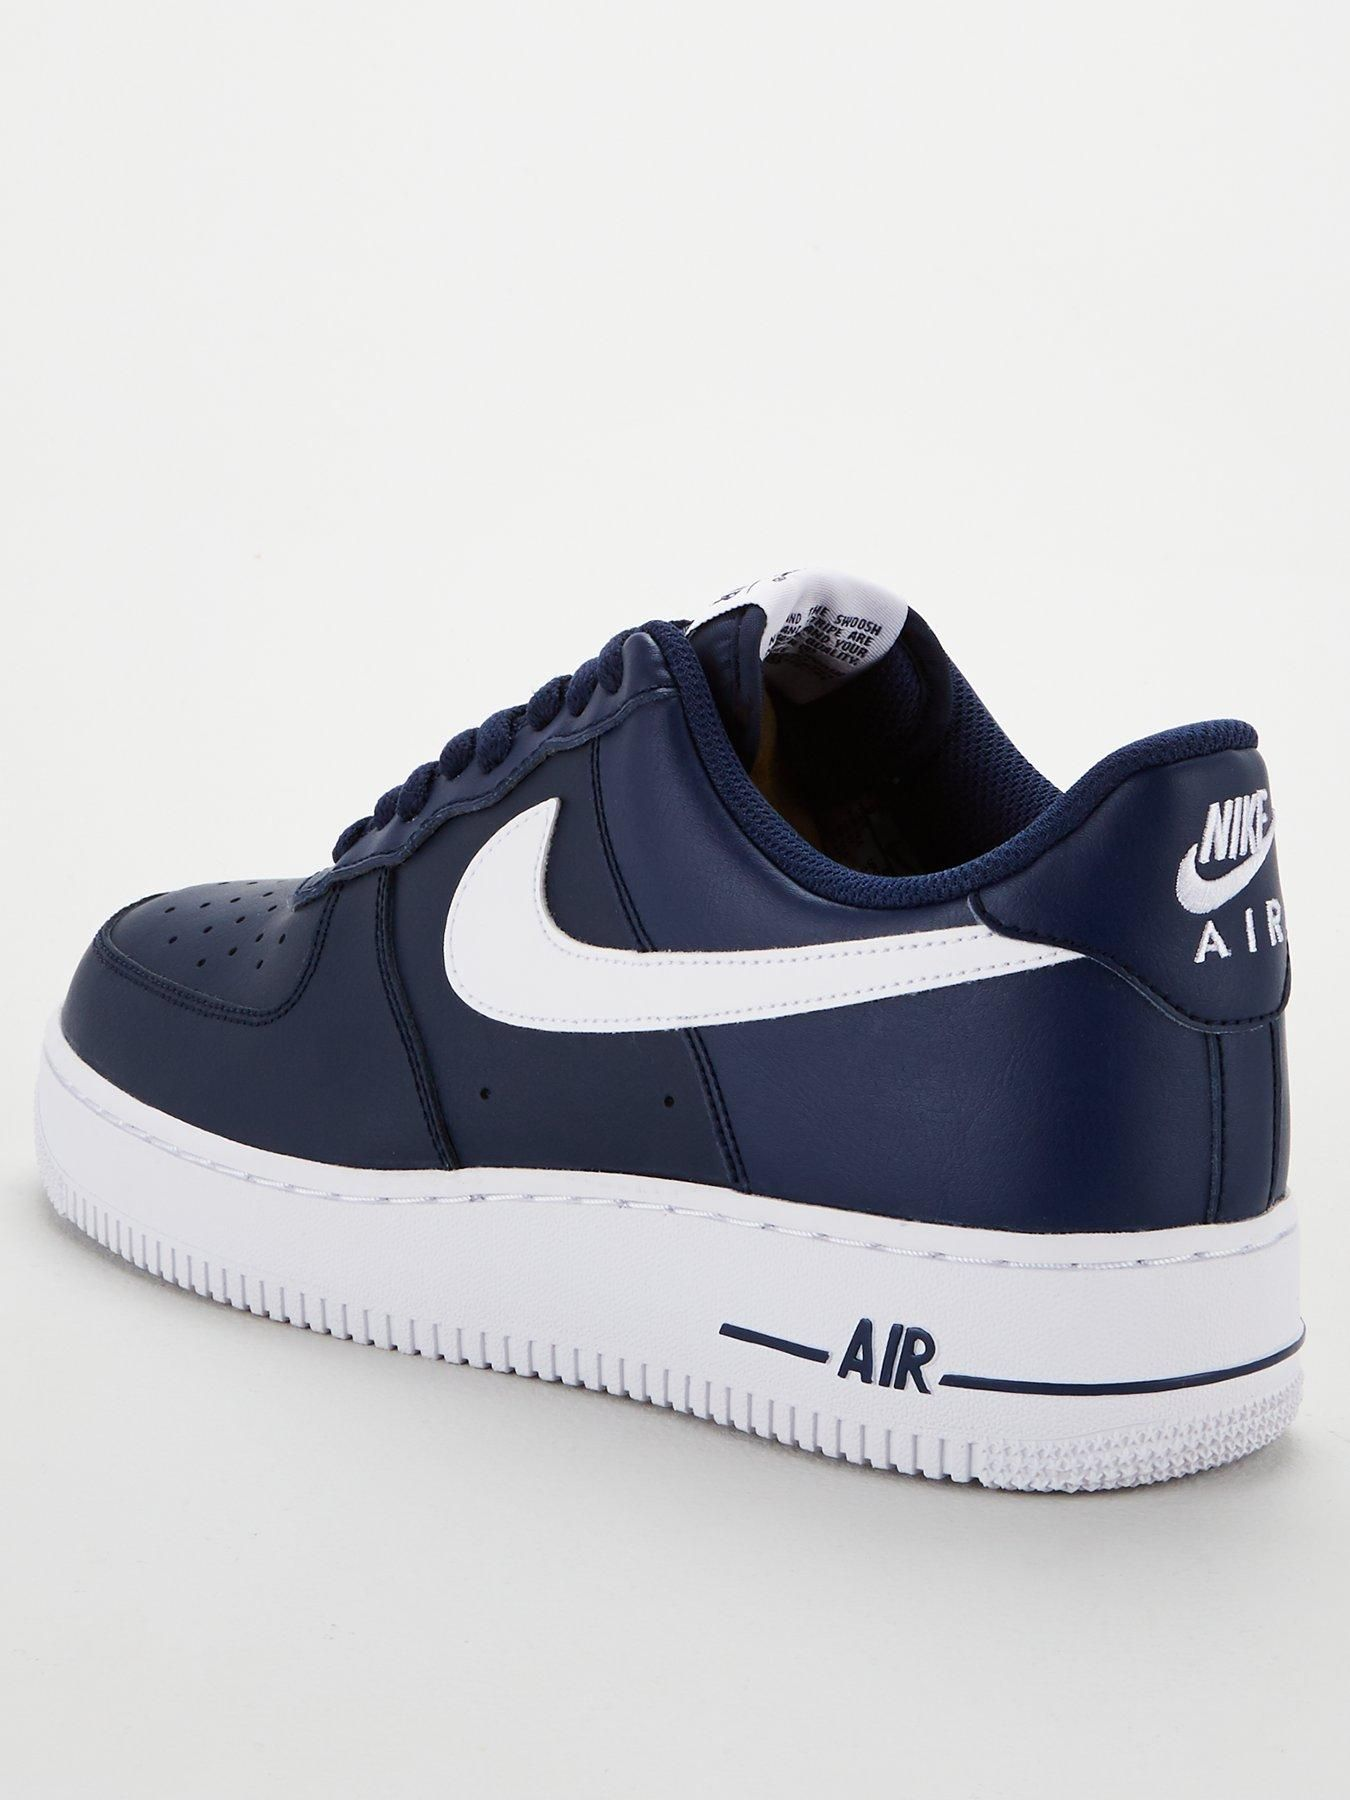 Nike Air Force 1 '07 AN20 - Navy/White in 2020 (With images ...